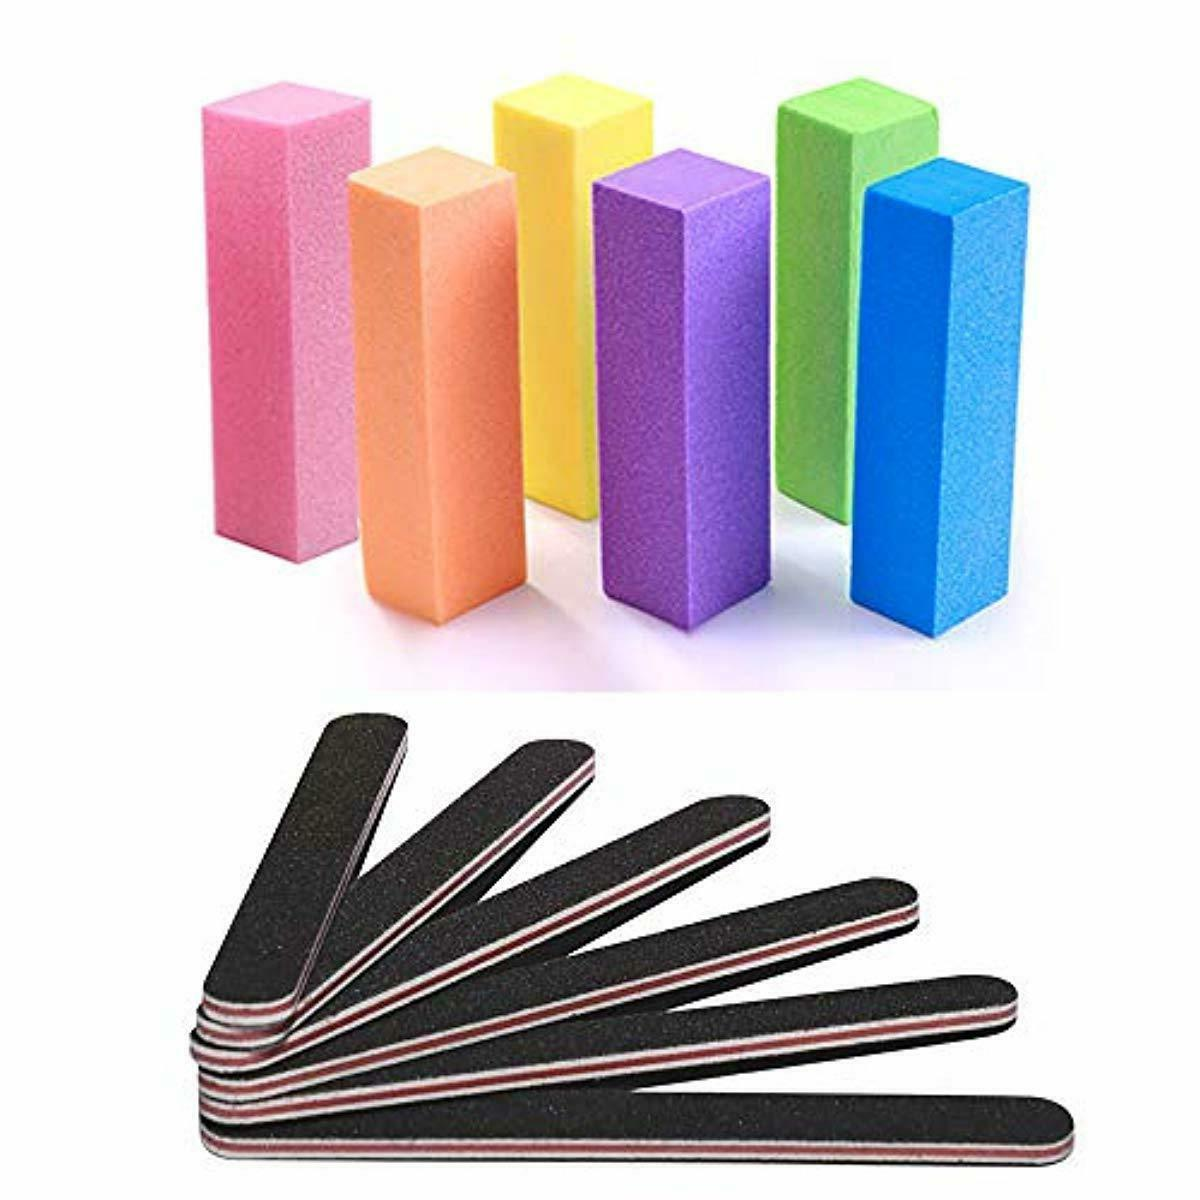 nail files and buffer professional manicure tools